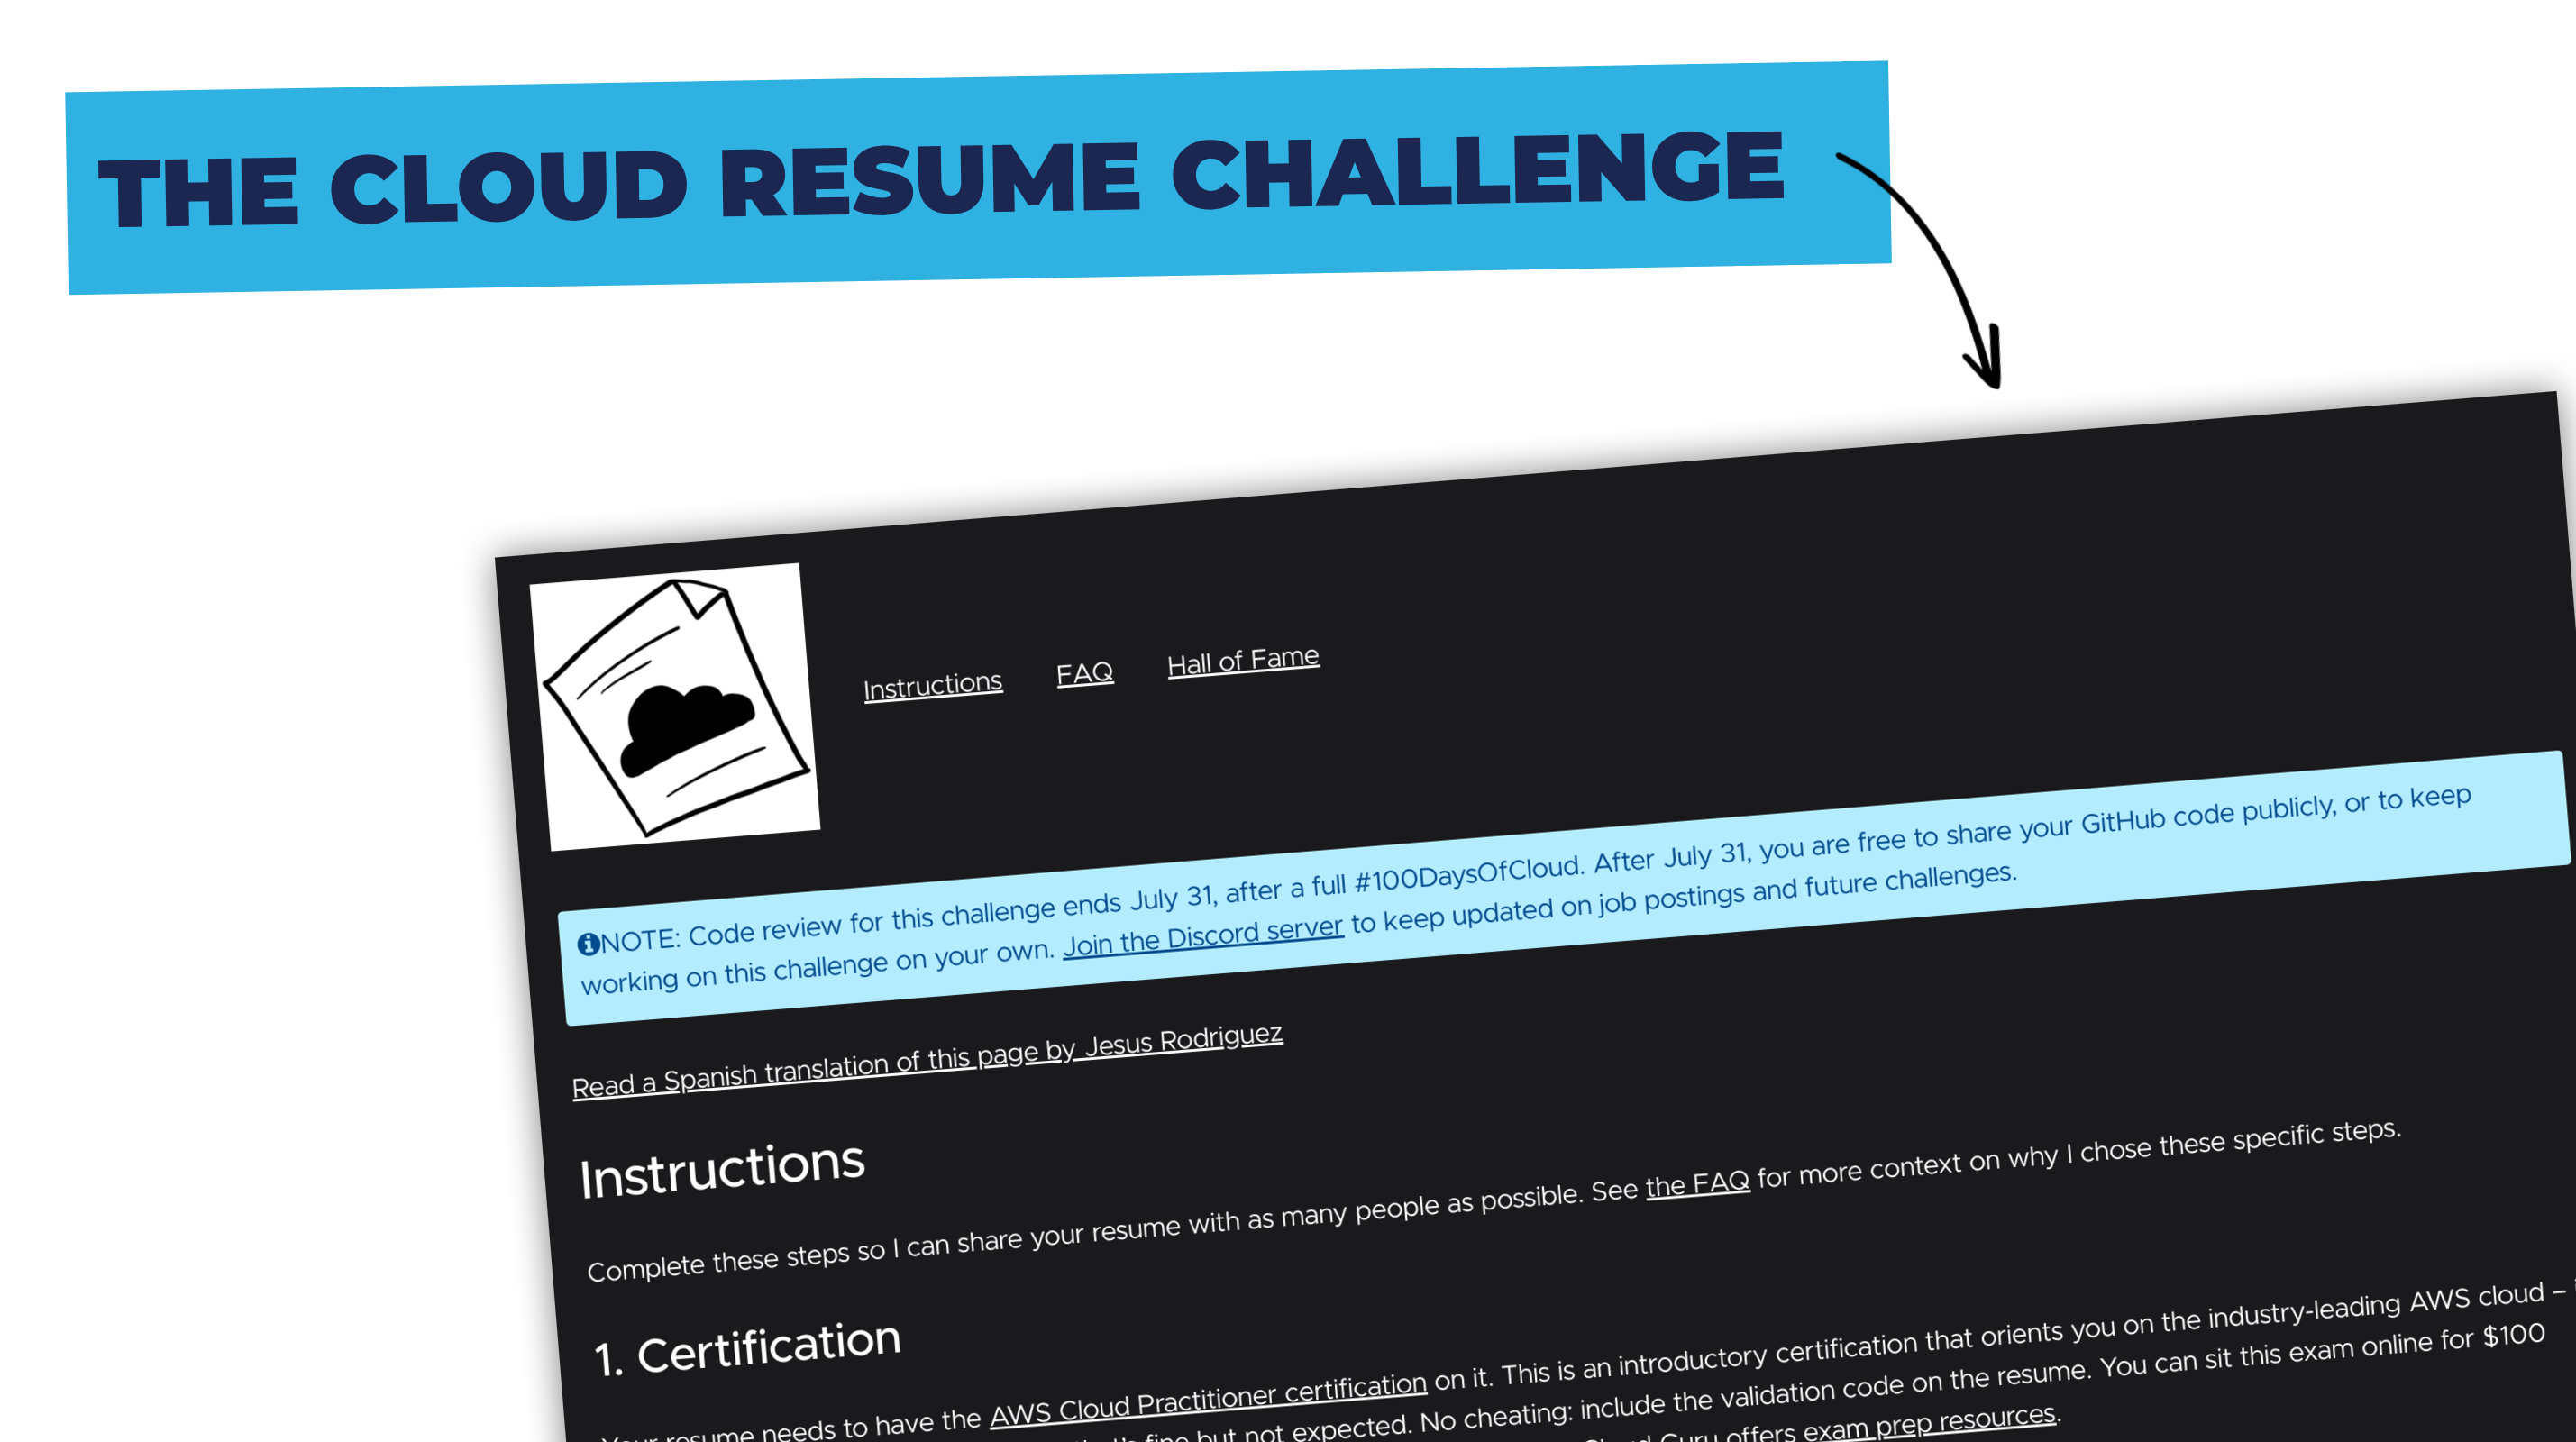 A screenshot of the cloud resume challenge steps